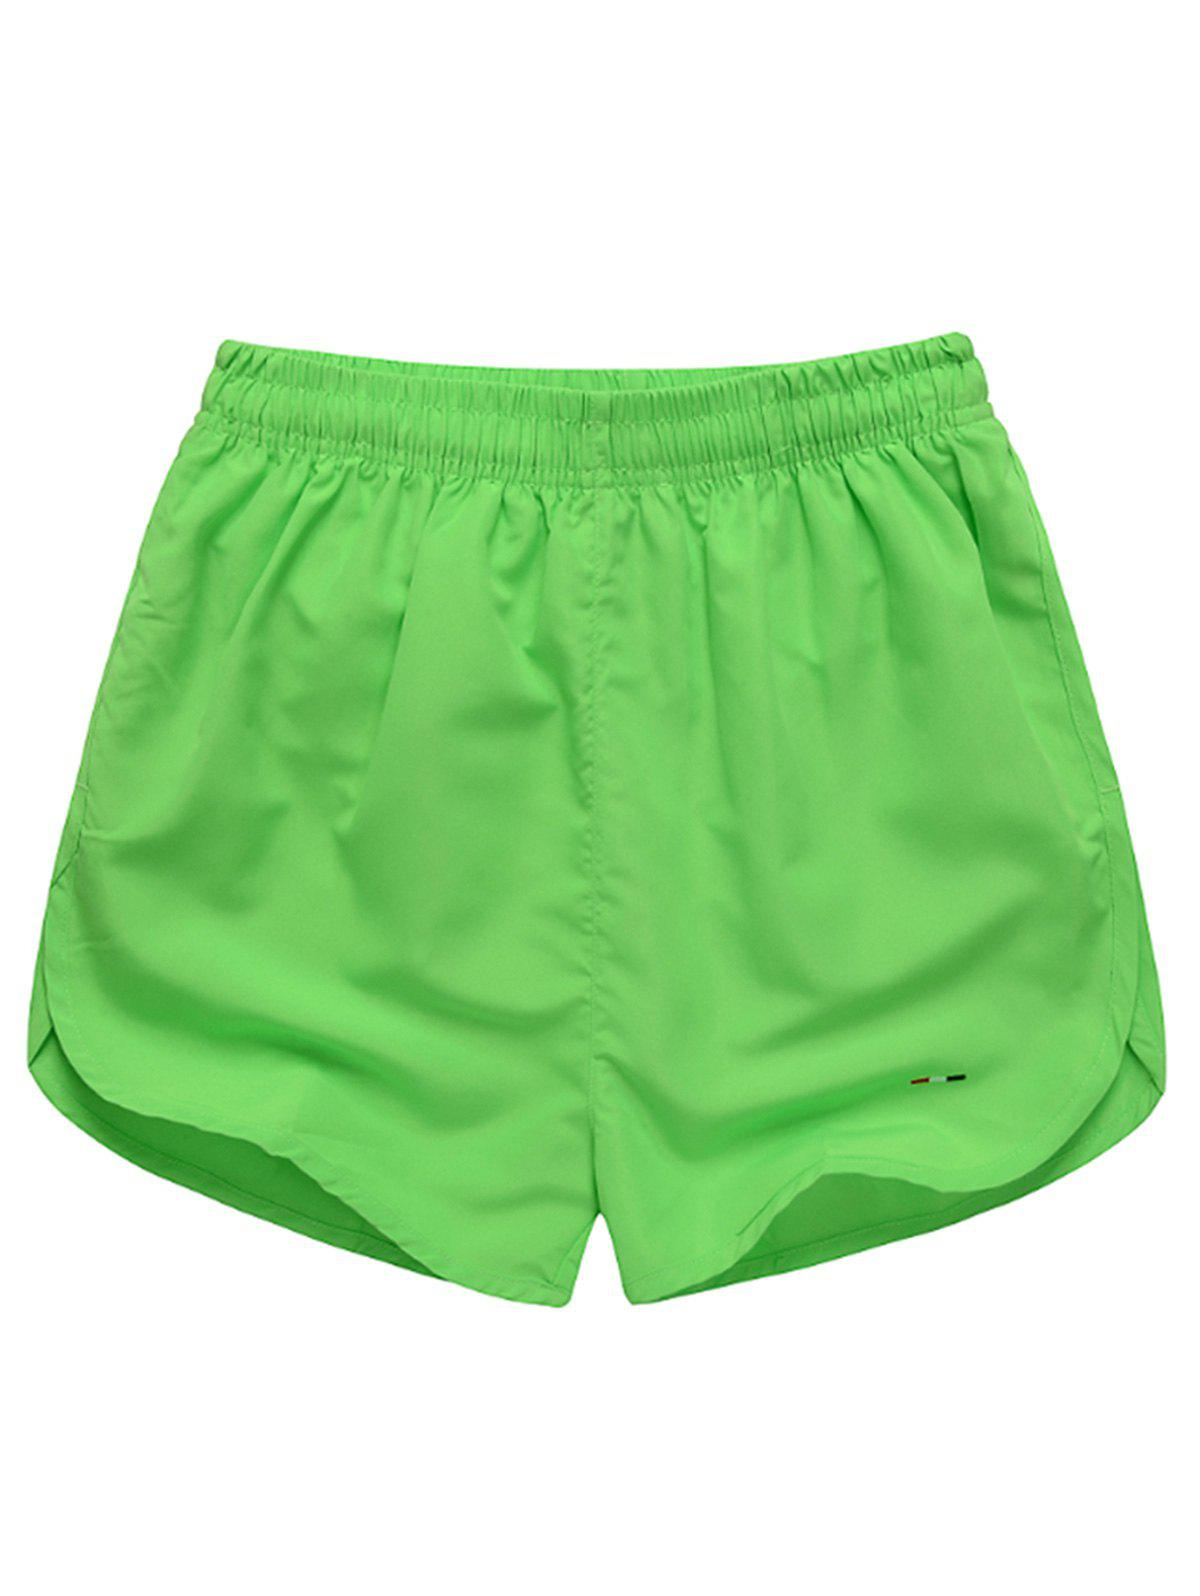 Mesh Lined Dolphin Hem Beach Shorts - LIGHT GREEN 2XL